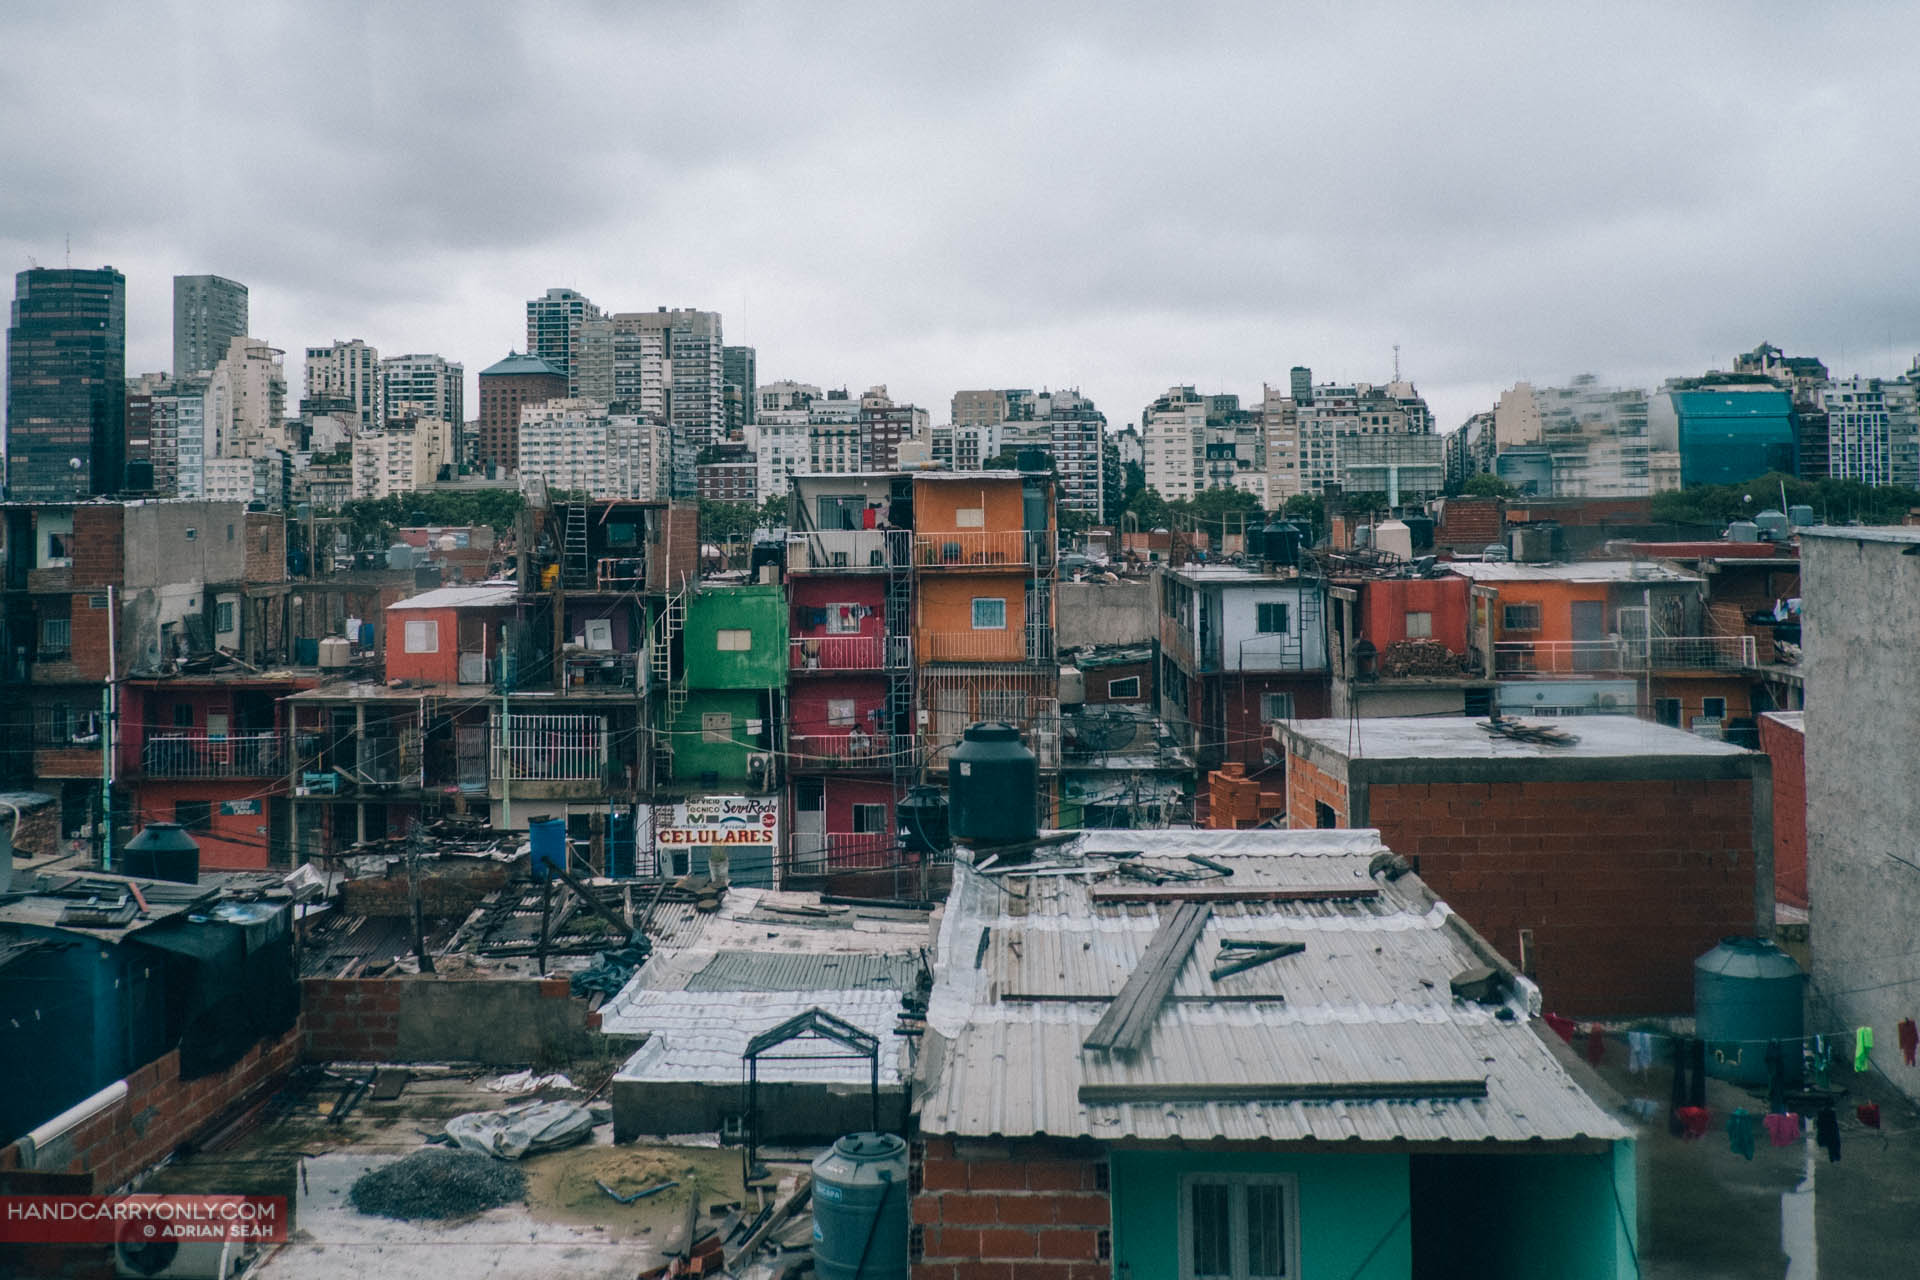 la miseria, the slums of buenos aires